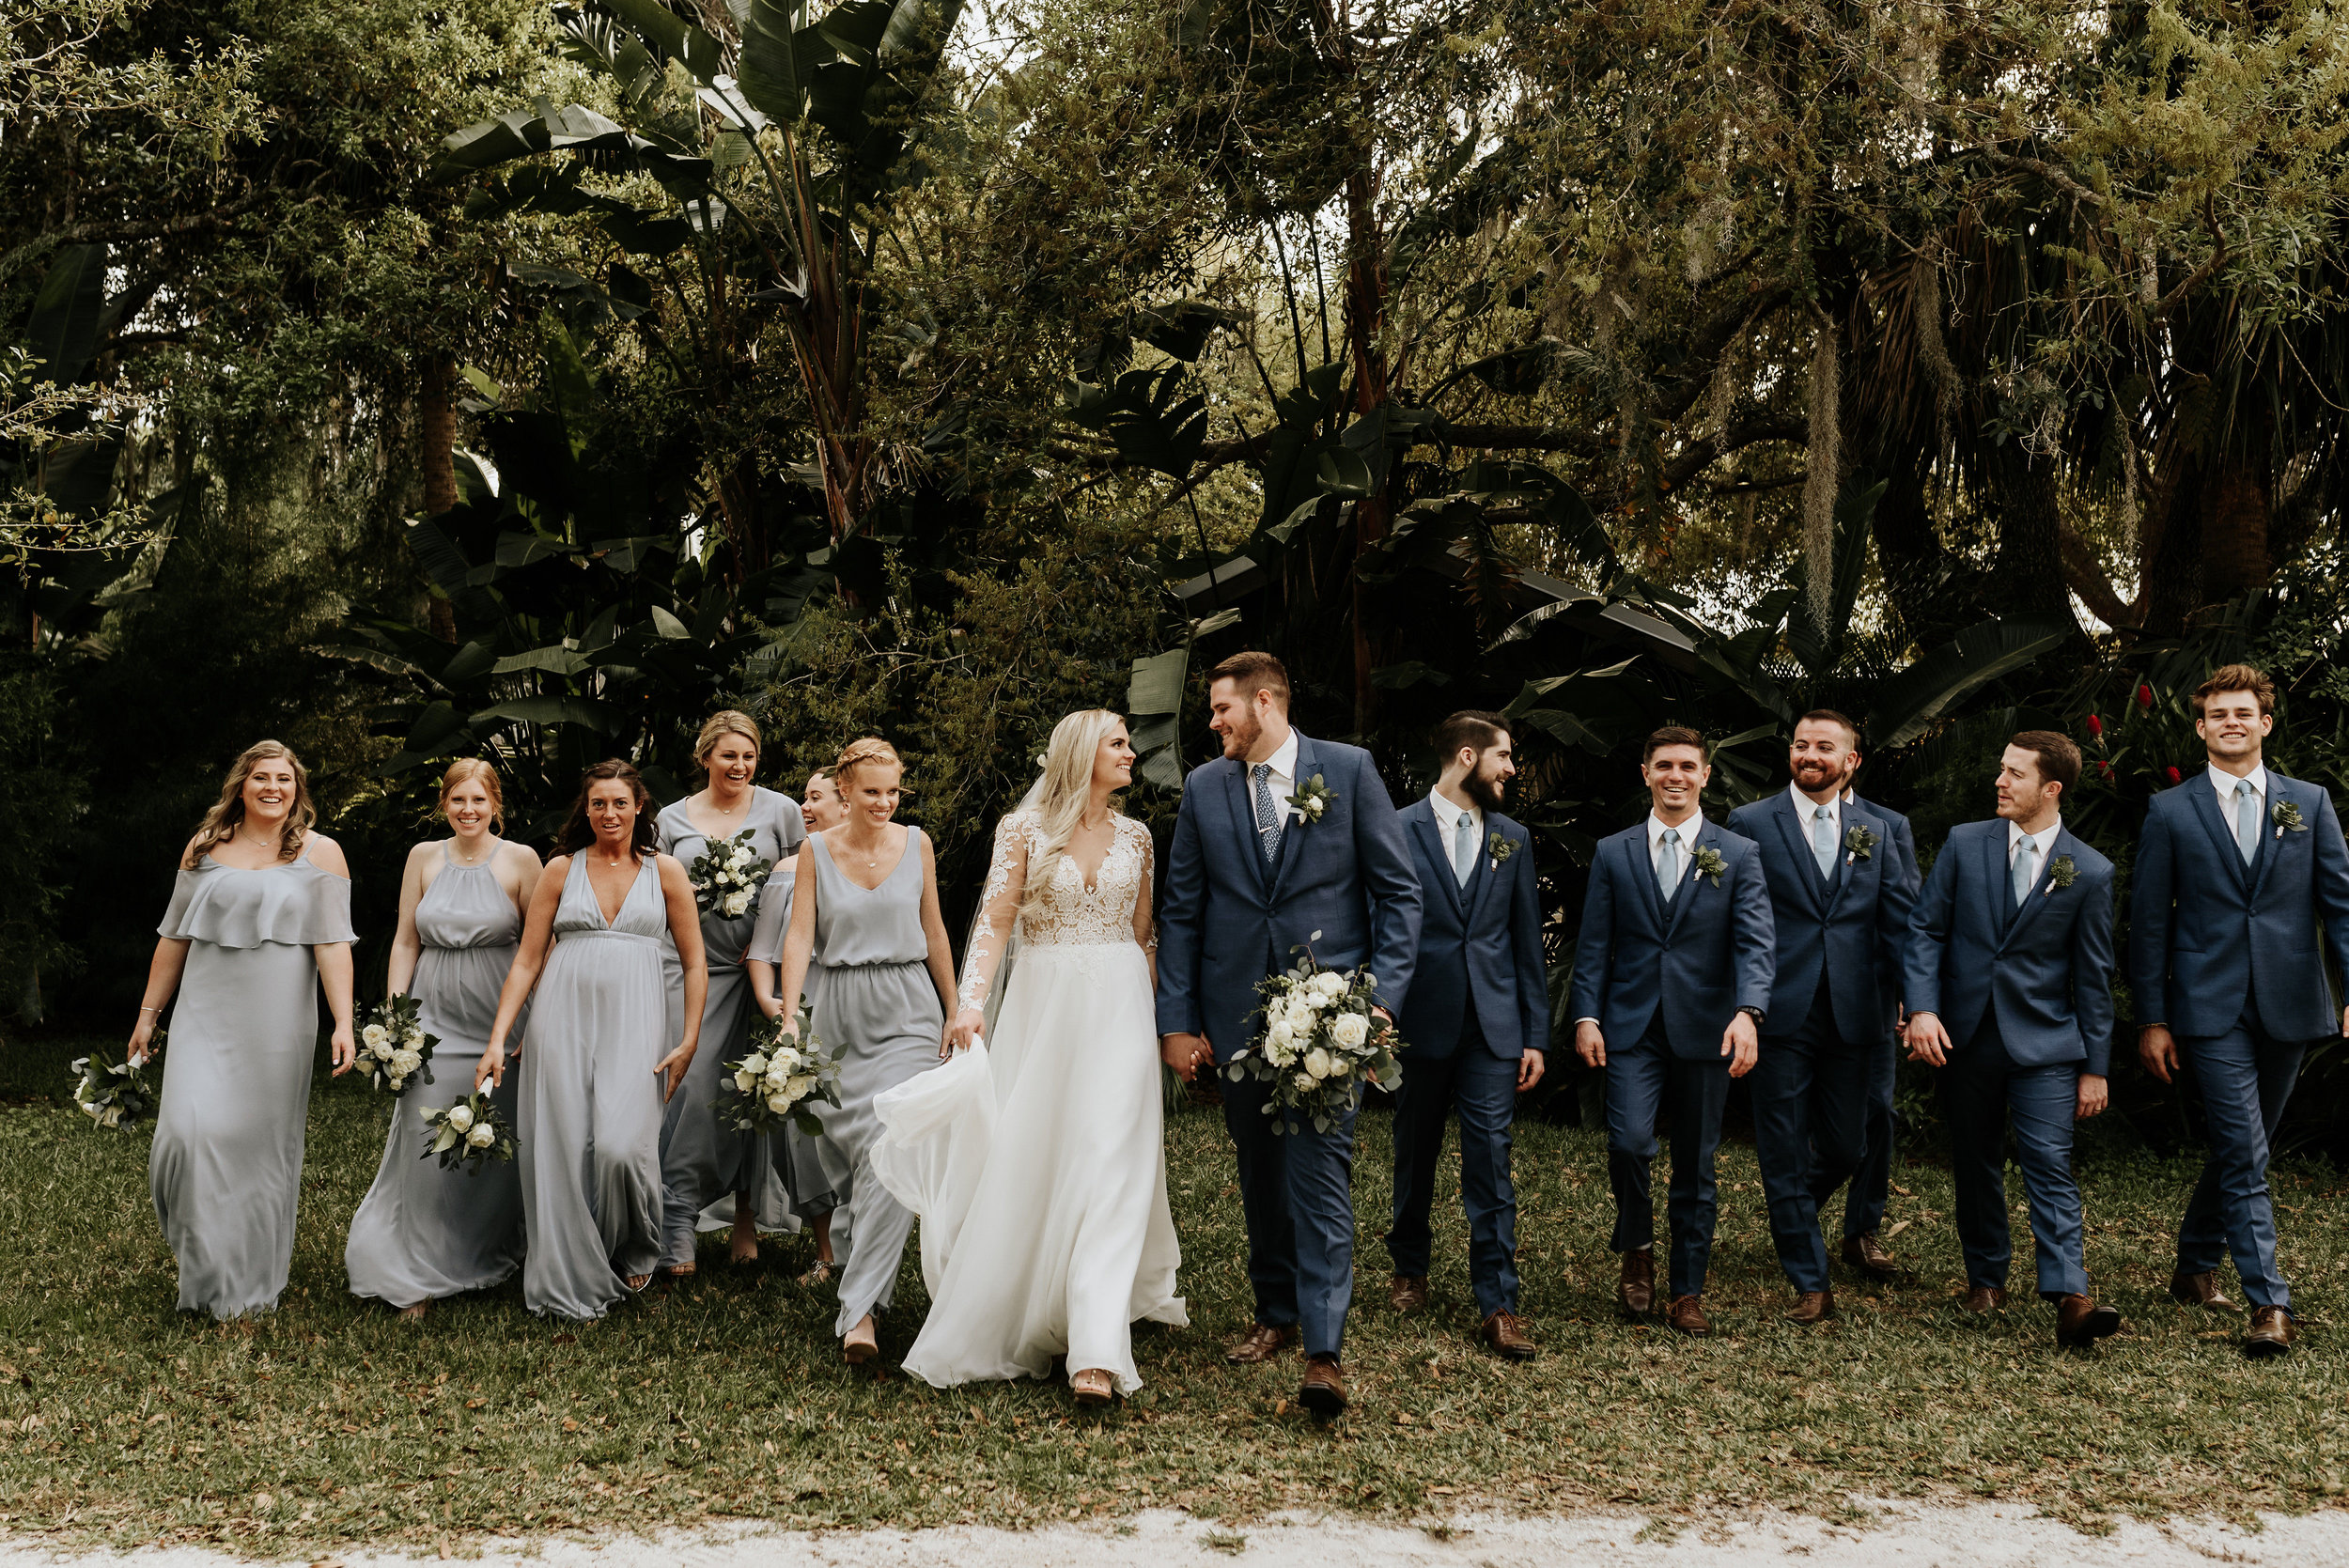 Mikenzi_Brad_Wedding_The_Delamater_House_New_Smyrna_Beach_Florida_Photography_by_V_0493.jpg